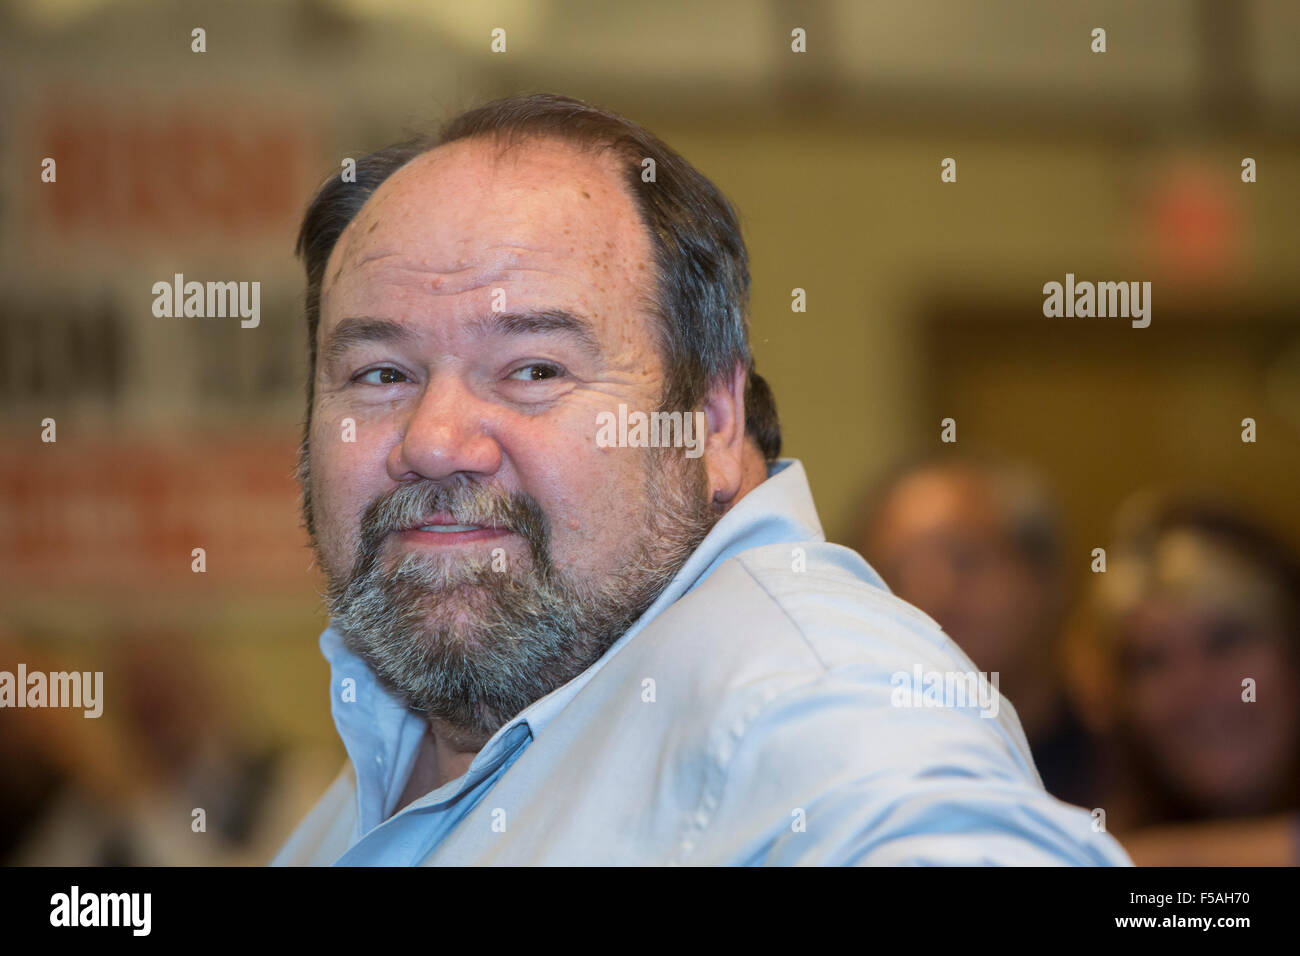 Cleveland, Ohio - Tim Sylvester, candidate for president of the Teamsters Union. - Stock Image